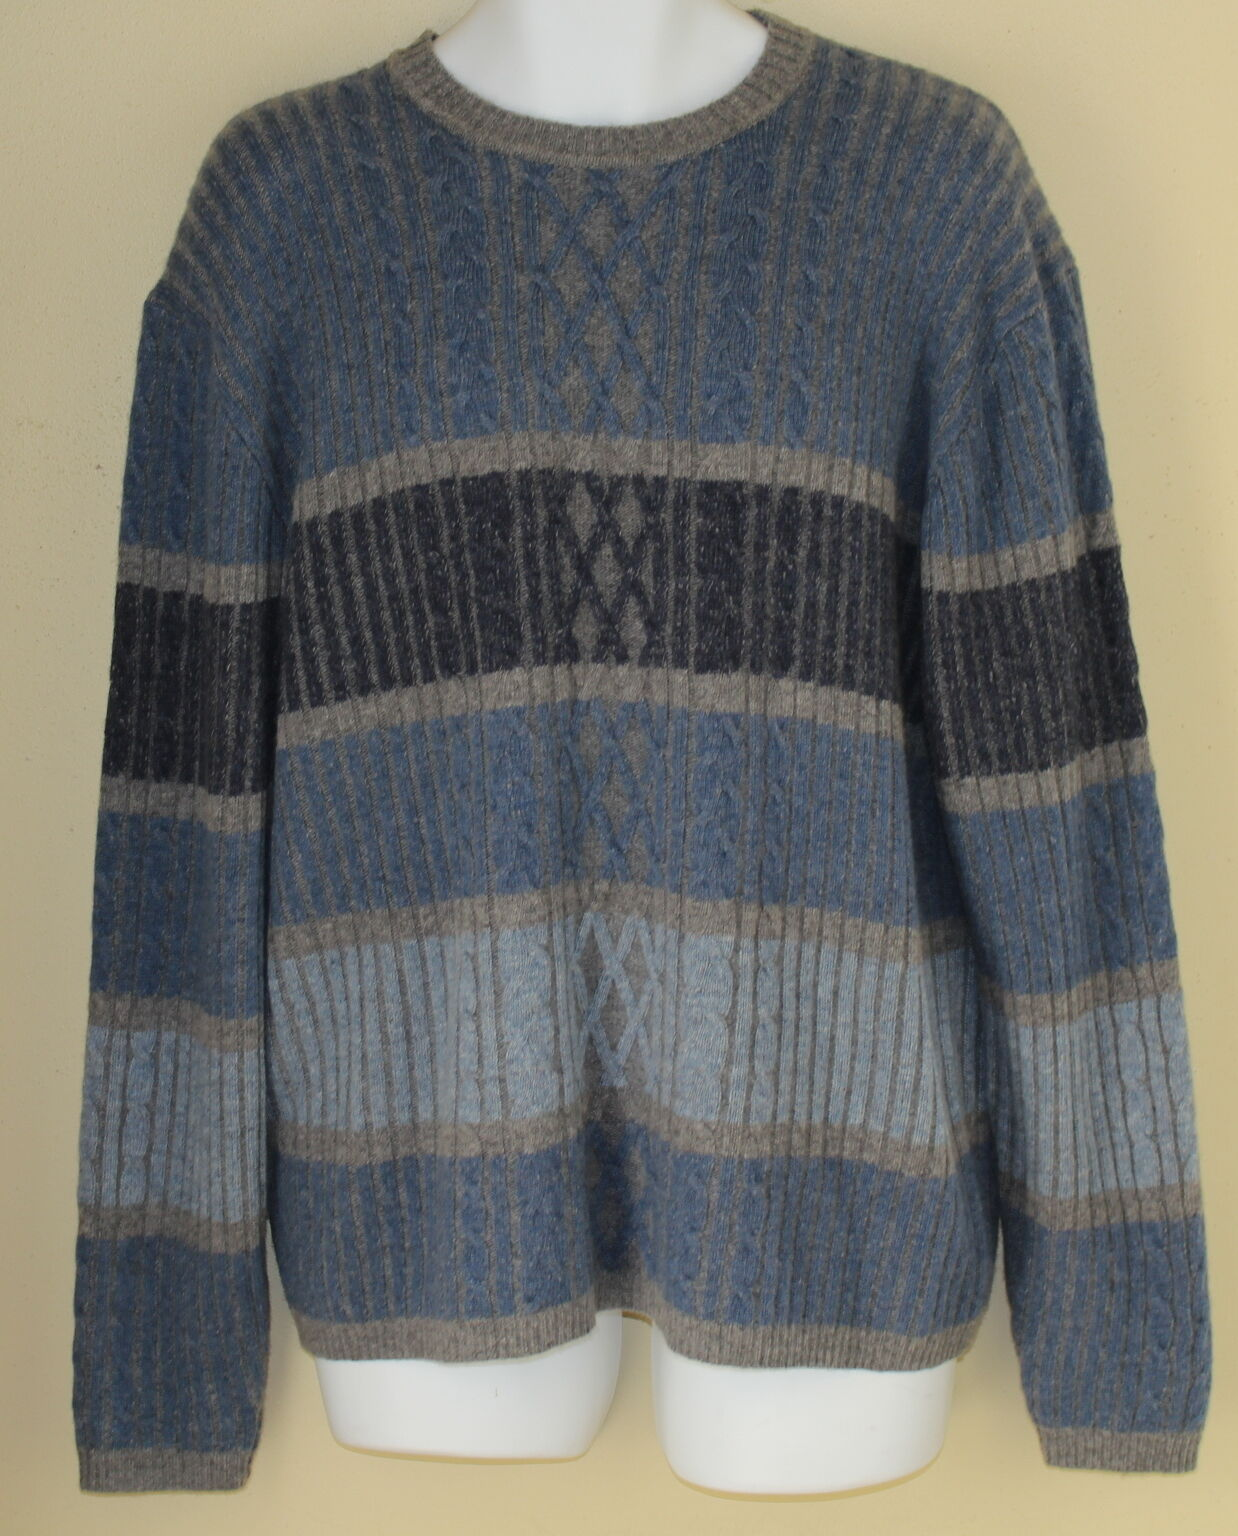 Roundtree & York Indigo Blau Cable Textural Art Knit Lambswool Crew Sweater Sz L